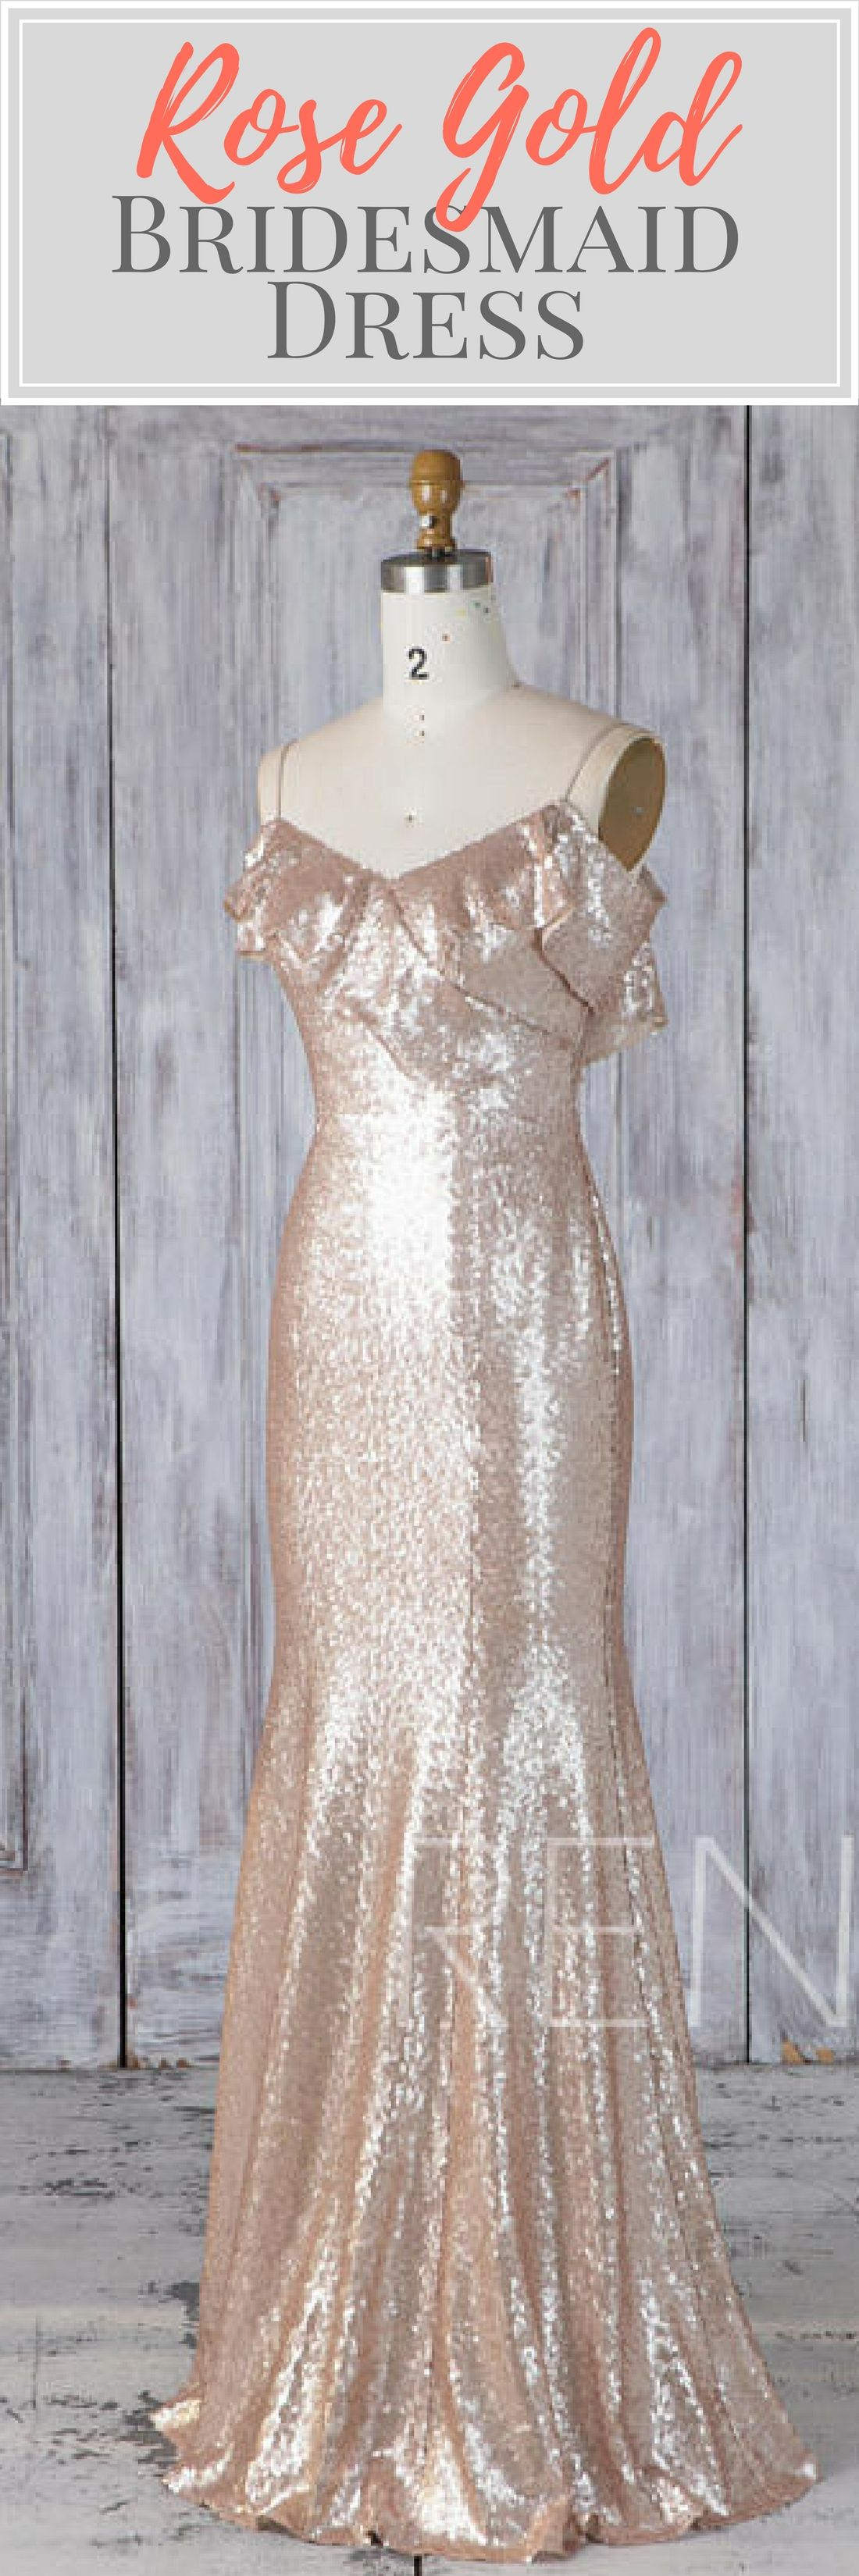 Gold sparkle wedding dress  Enchanting rose gold sequin bridesmaid dress or wedding dress with a